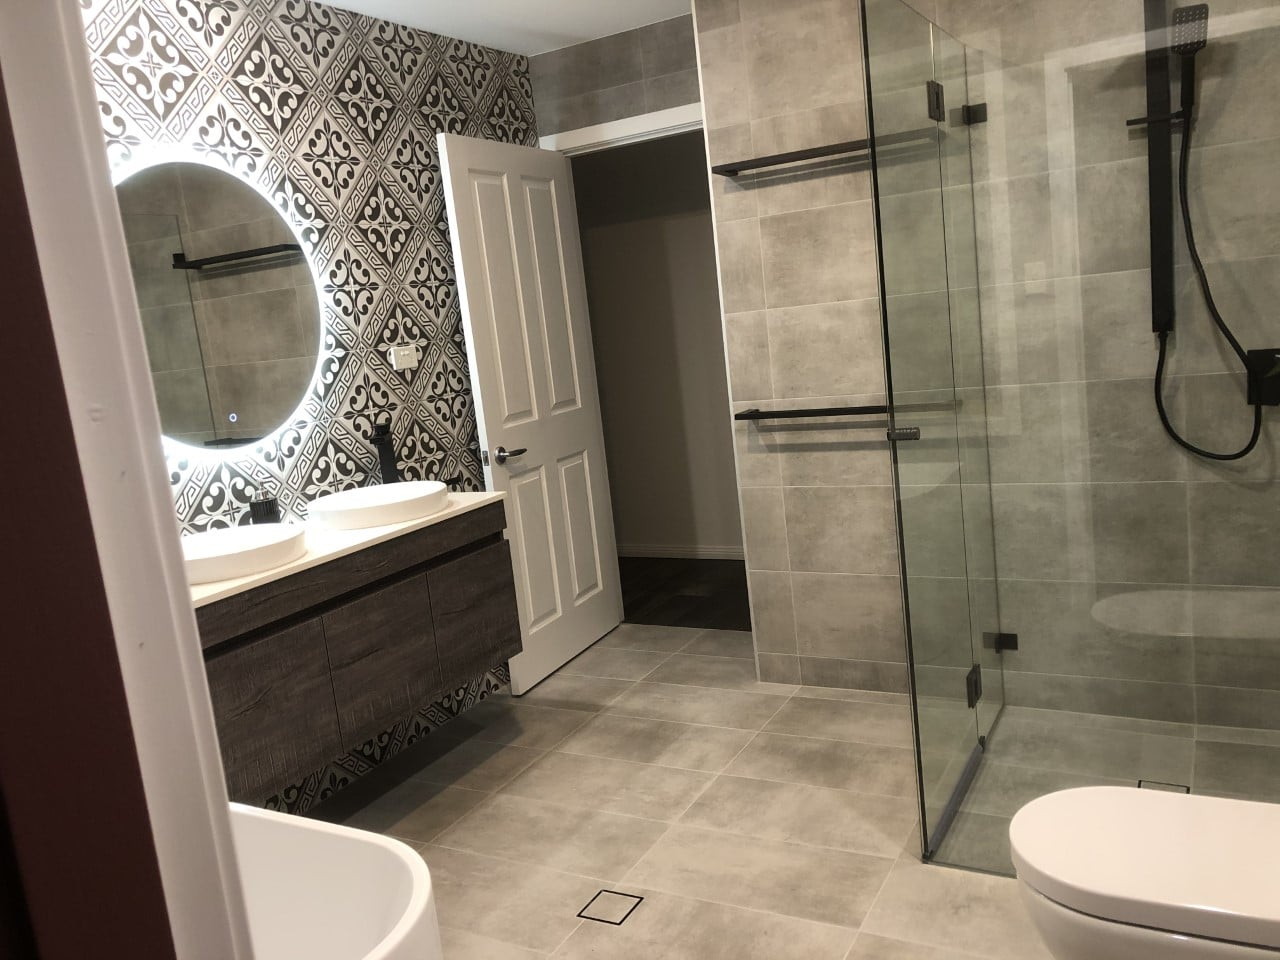 castle hill completed bathroom reno project